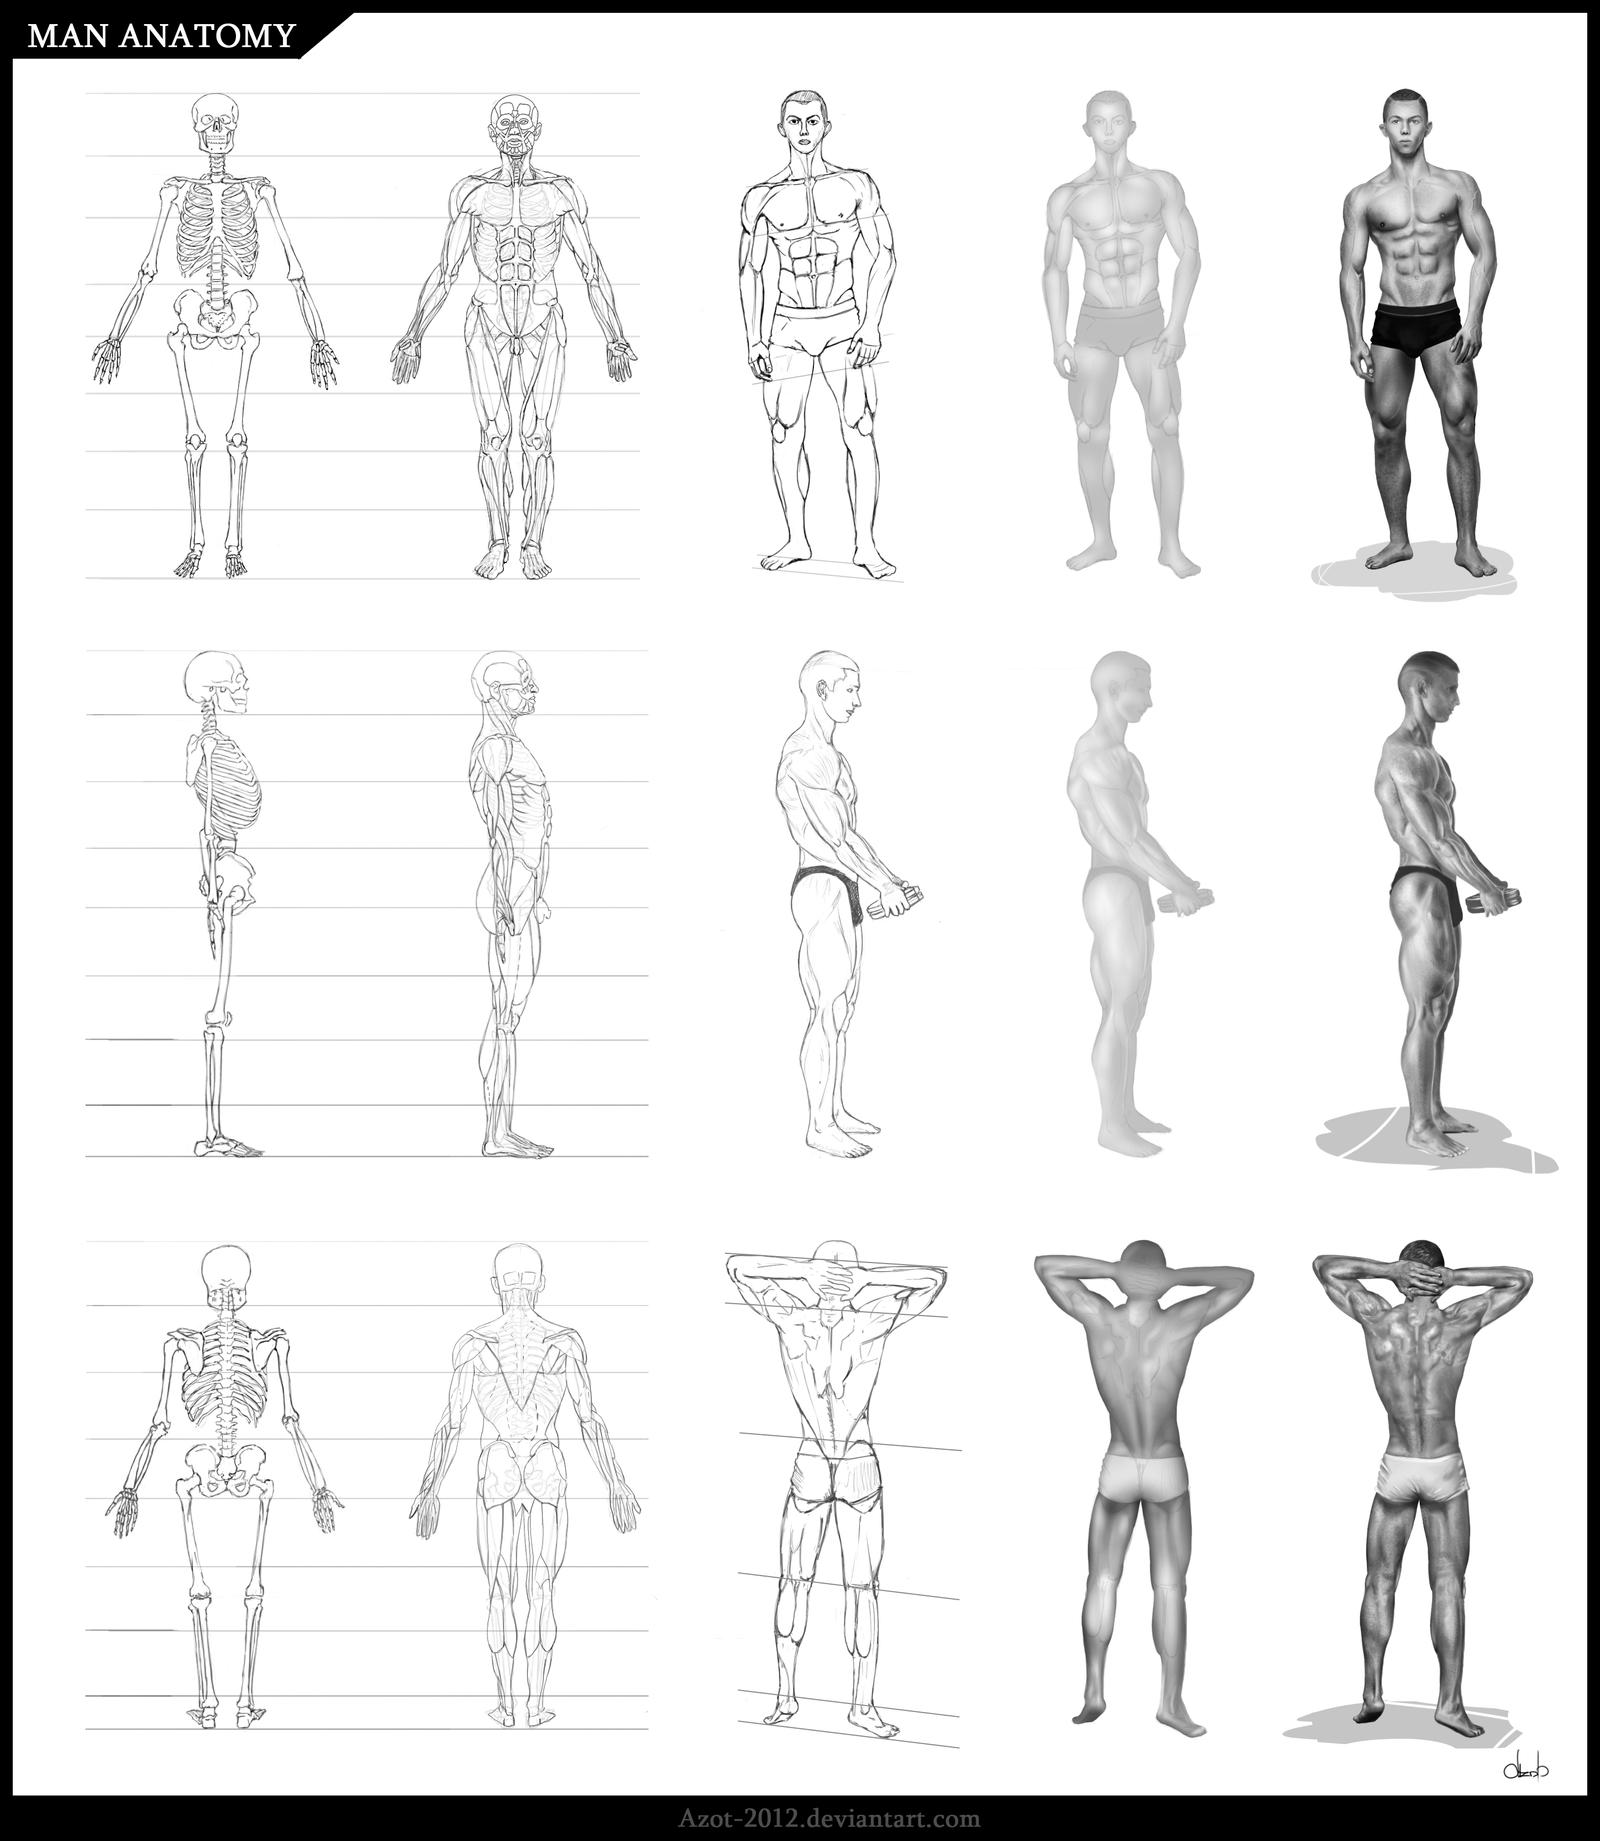 Man Anatomy by Azot2015